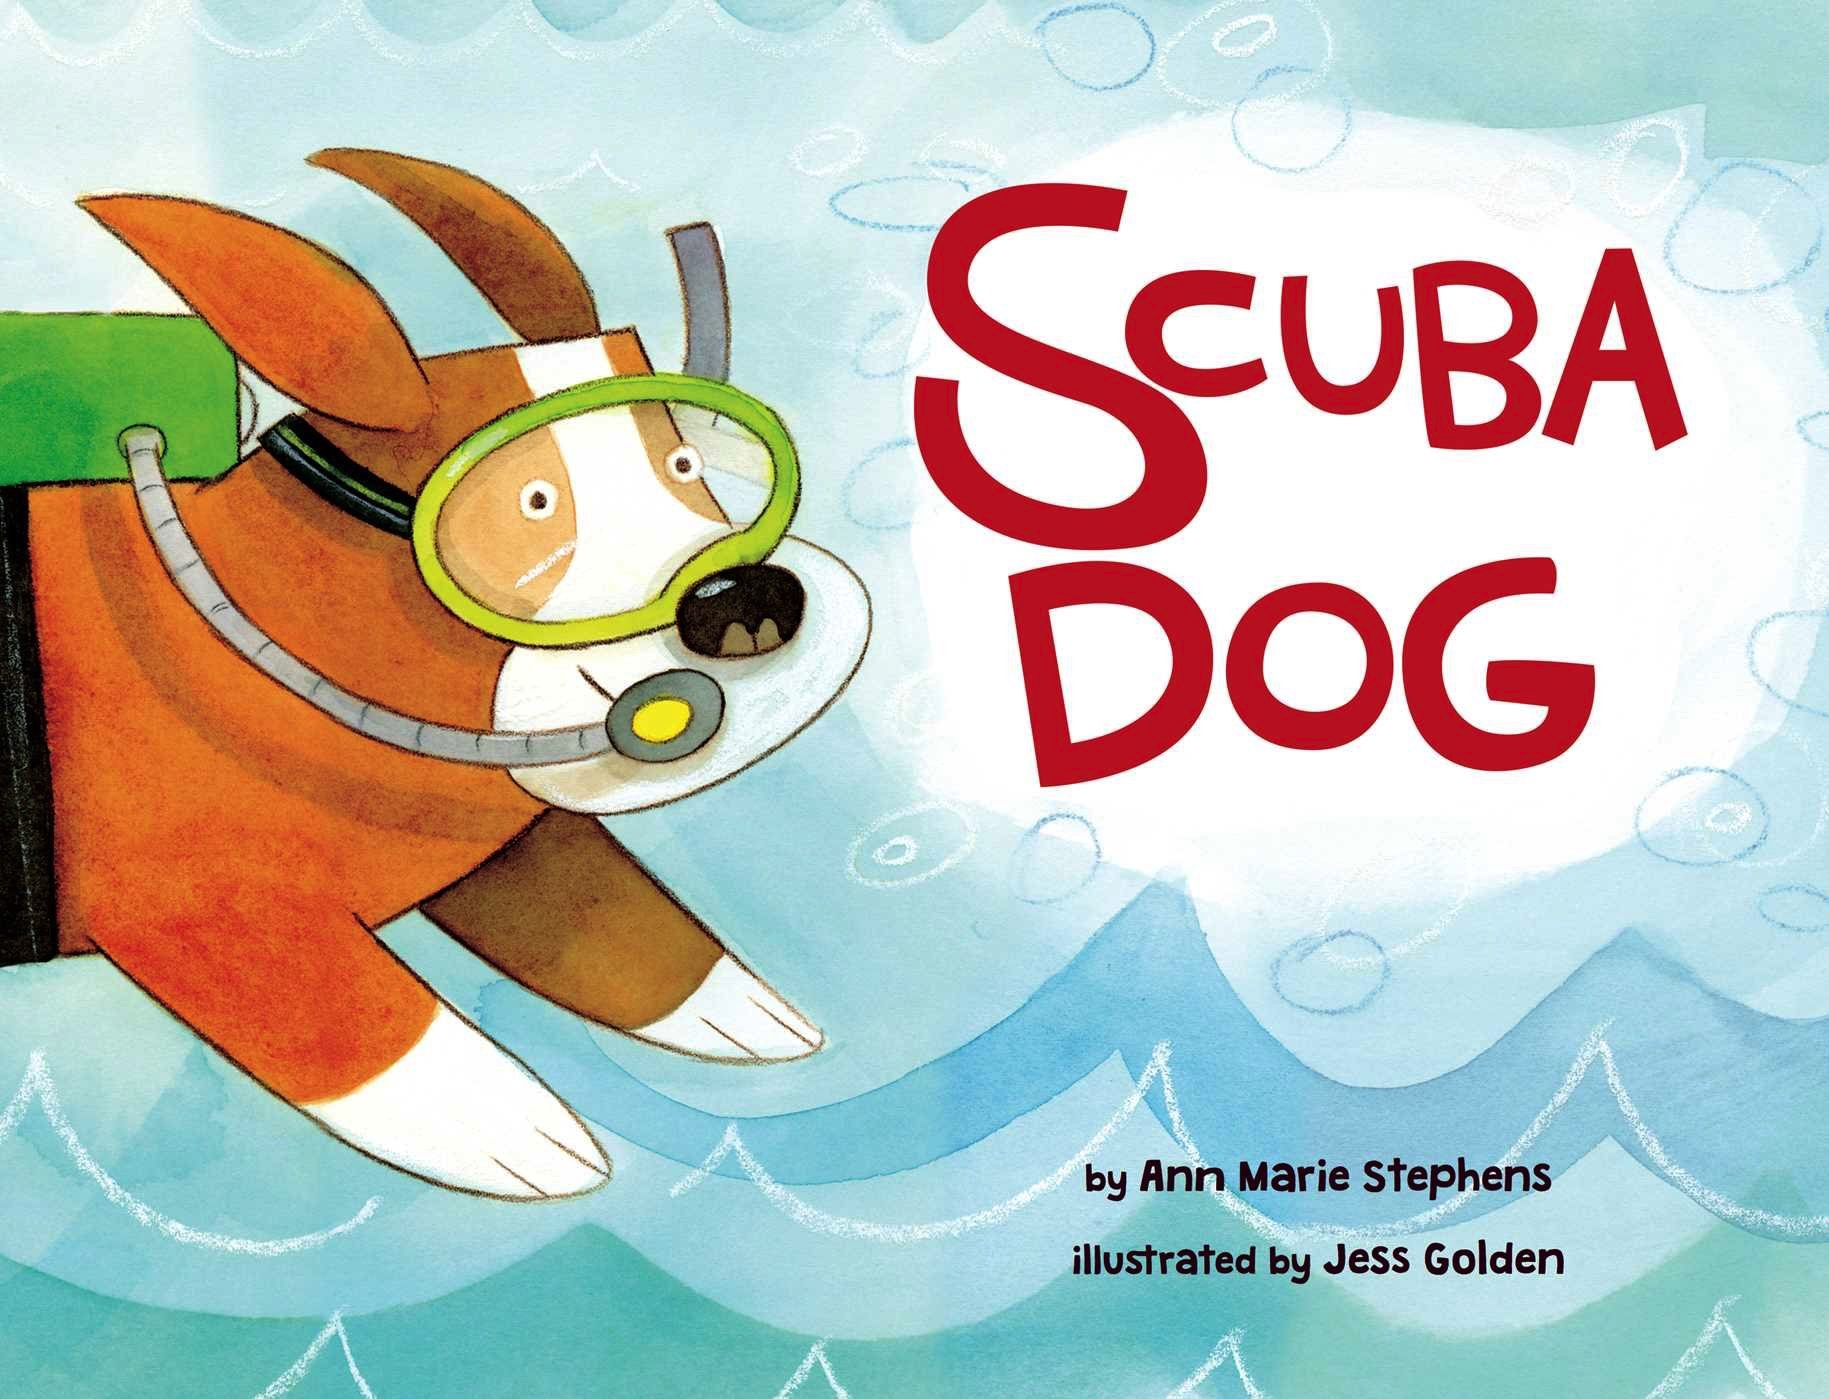 Scuba Dog by Ann Marie Stephens, illustrated by Jess Golden (little bee books)